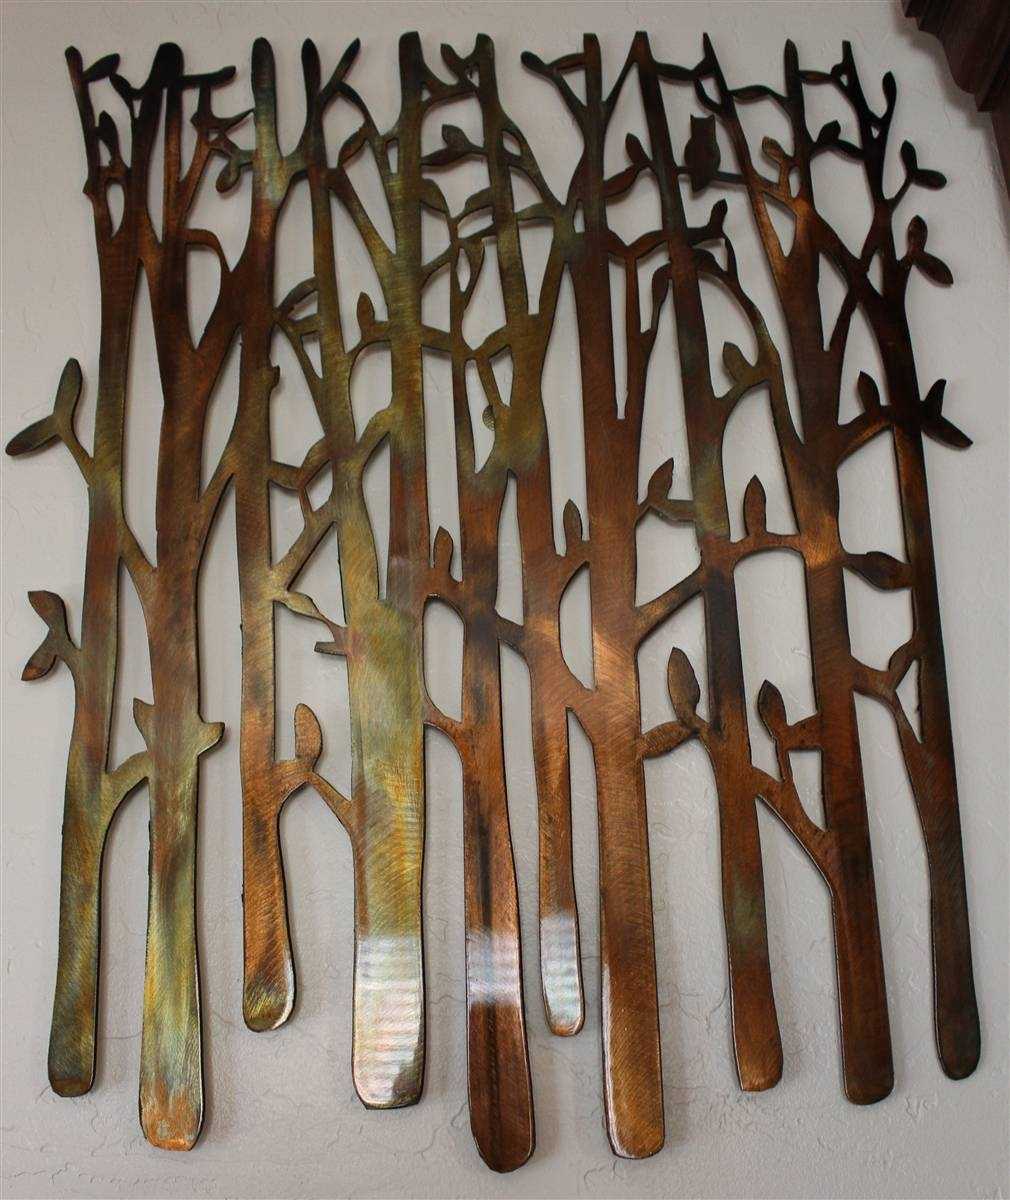 Birch Tree, Birch Tree Metal Art, Bamboo, Bird In The Trees, Bird Intended For Latest Birds On A Branch Metal Wall Art (View 9 of 20)